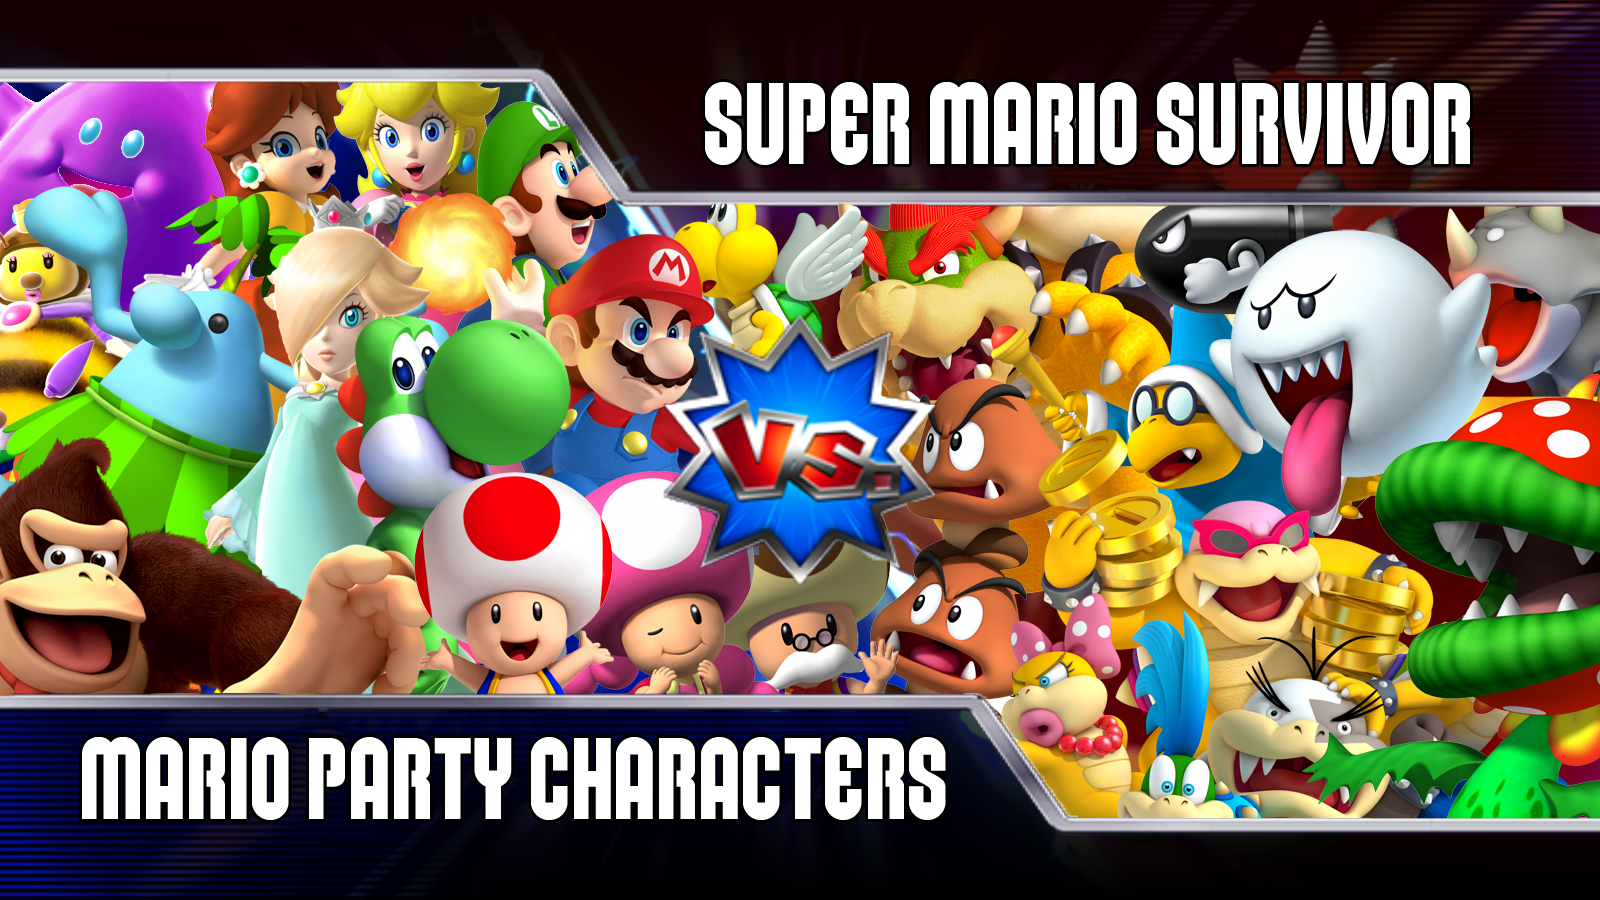 Super Mario Survivor 1 Mario Party Playable Characters